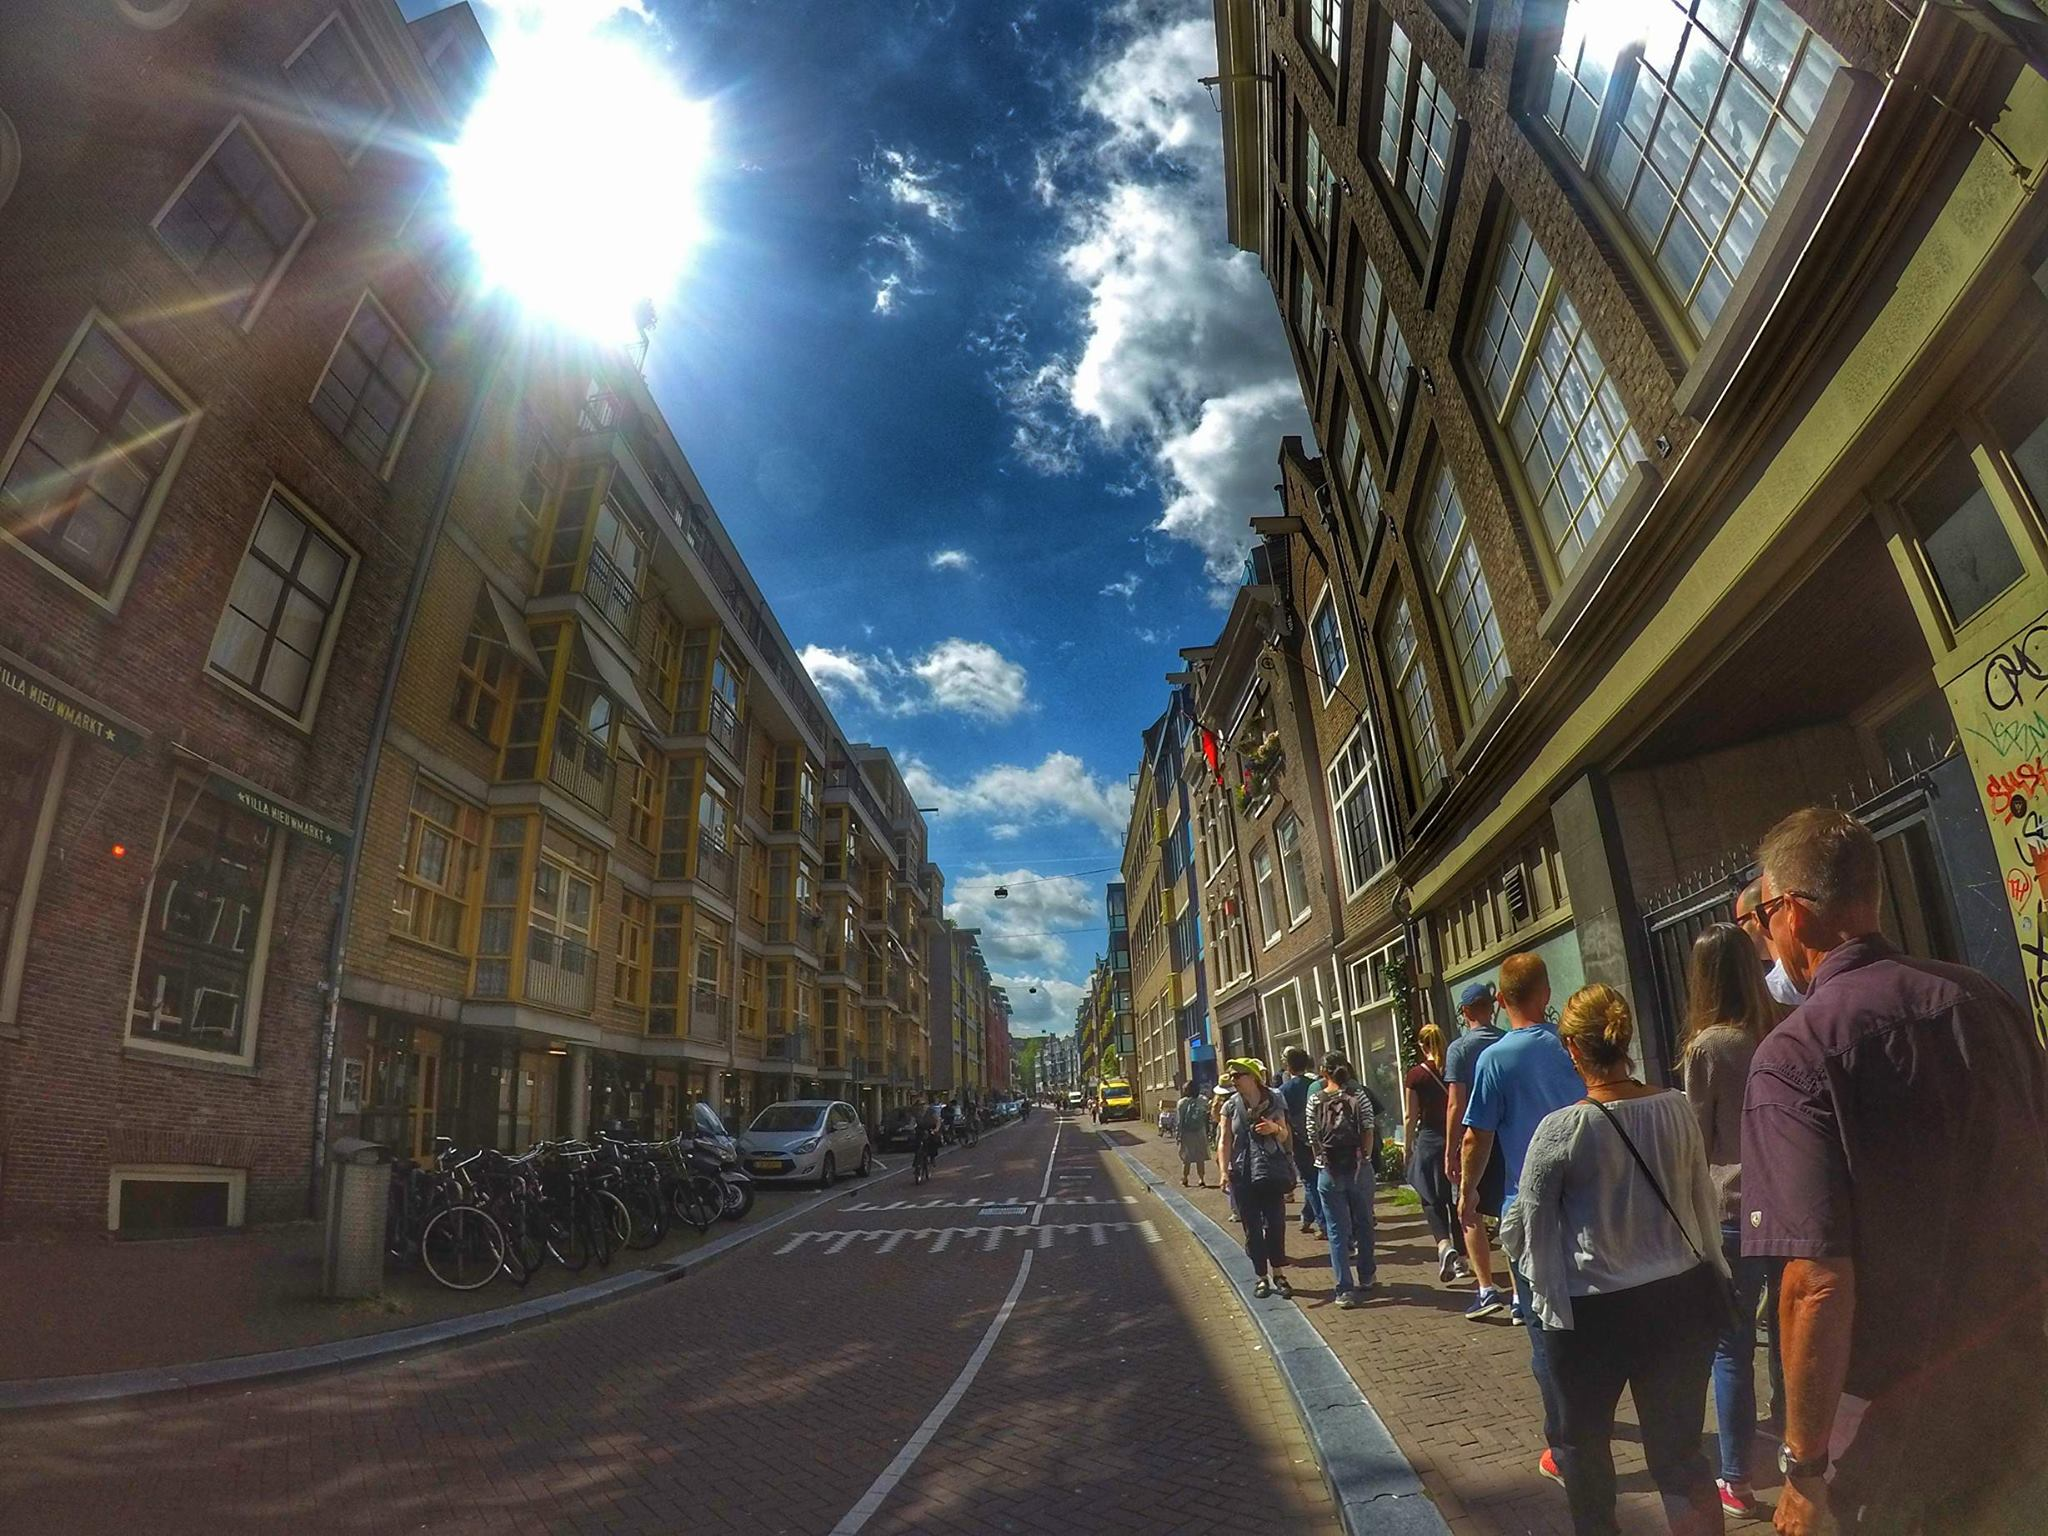 free walking tour - 10 things you must do in Amsterdam